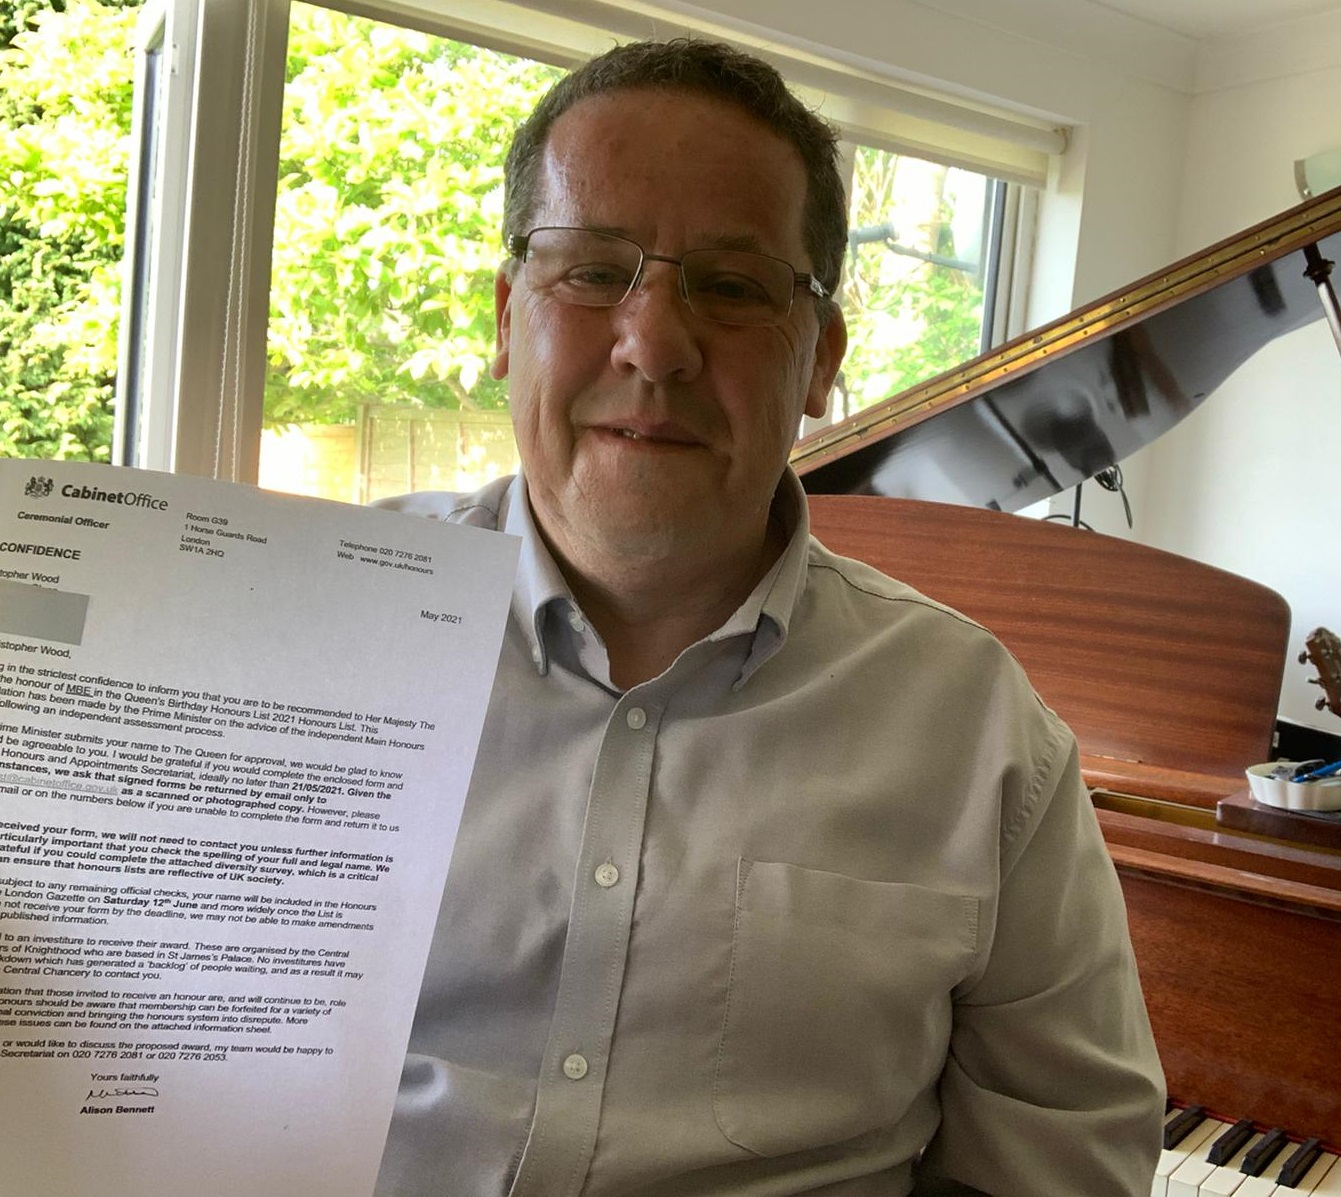 Chris Wood holds his letter from the Cabinet office up for the camera